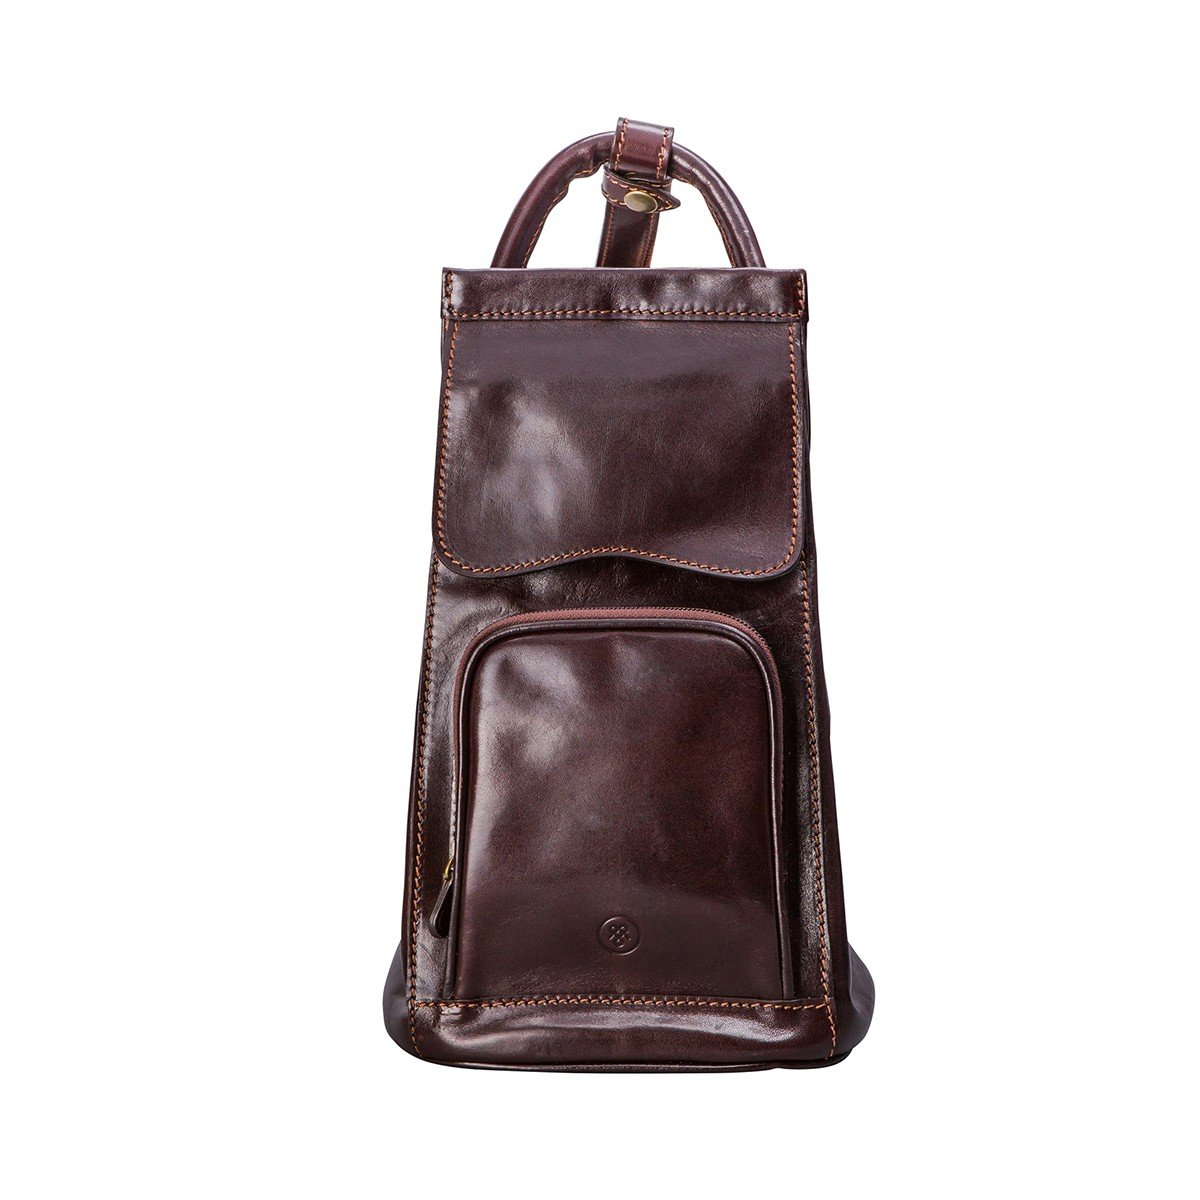 Maxwell Scott Luxury Brown Leather Sling Rucksack (Carli) - One Size